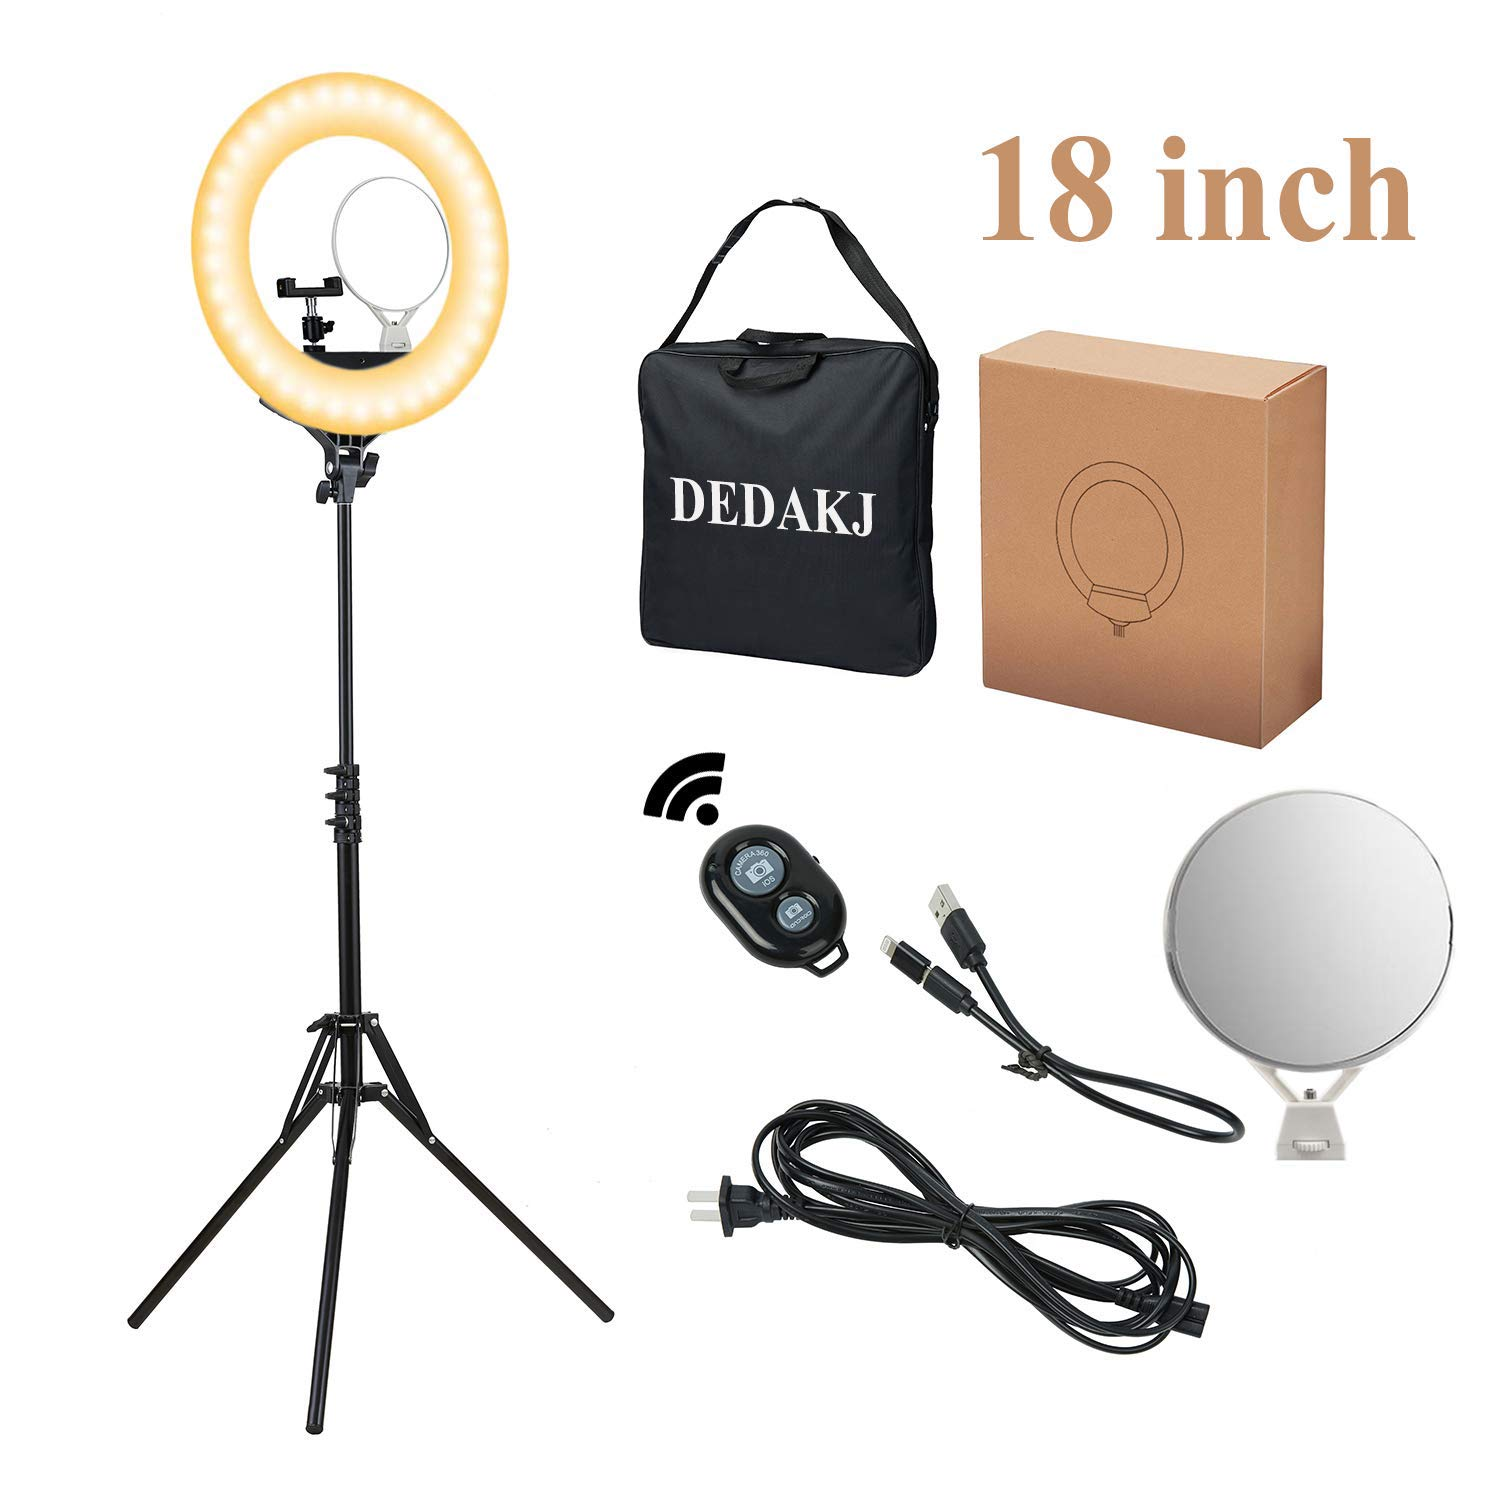 Ring Light, DEDAKJ 18 inch 480 pcs 80W Dimmable LED Ring Light with Cell Phone Holder/Tripod Stand/Remote Control/Carrying Bag and Dual Mirror for YouTube Videos/Take Pictures/Makeup O Ring Light by DEDAKJ